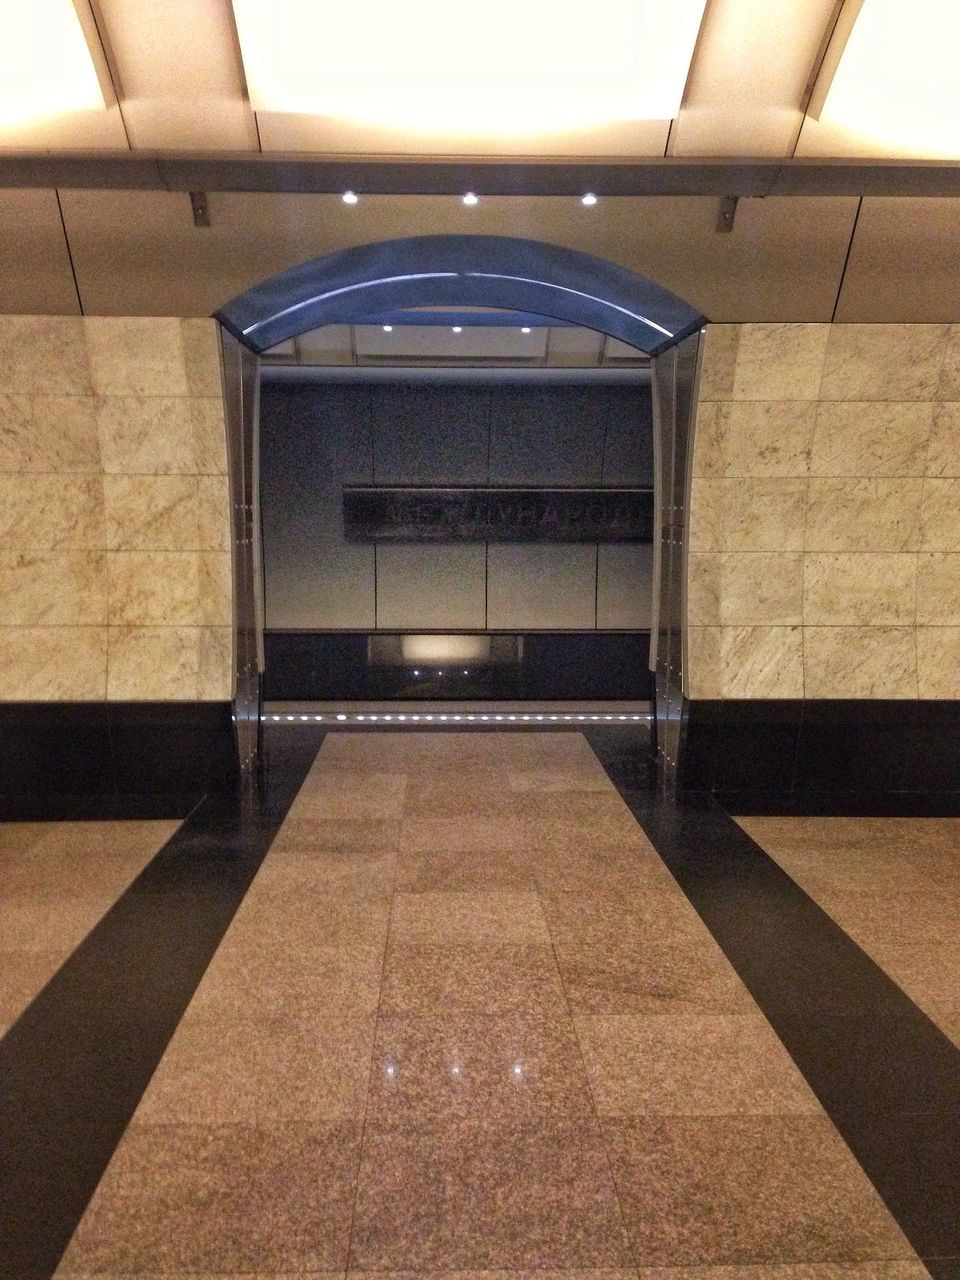 indoors, illuminated, ceiling, empty, the way forward, corridor, architecture, no people, built structure, subway station, technology, day